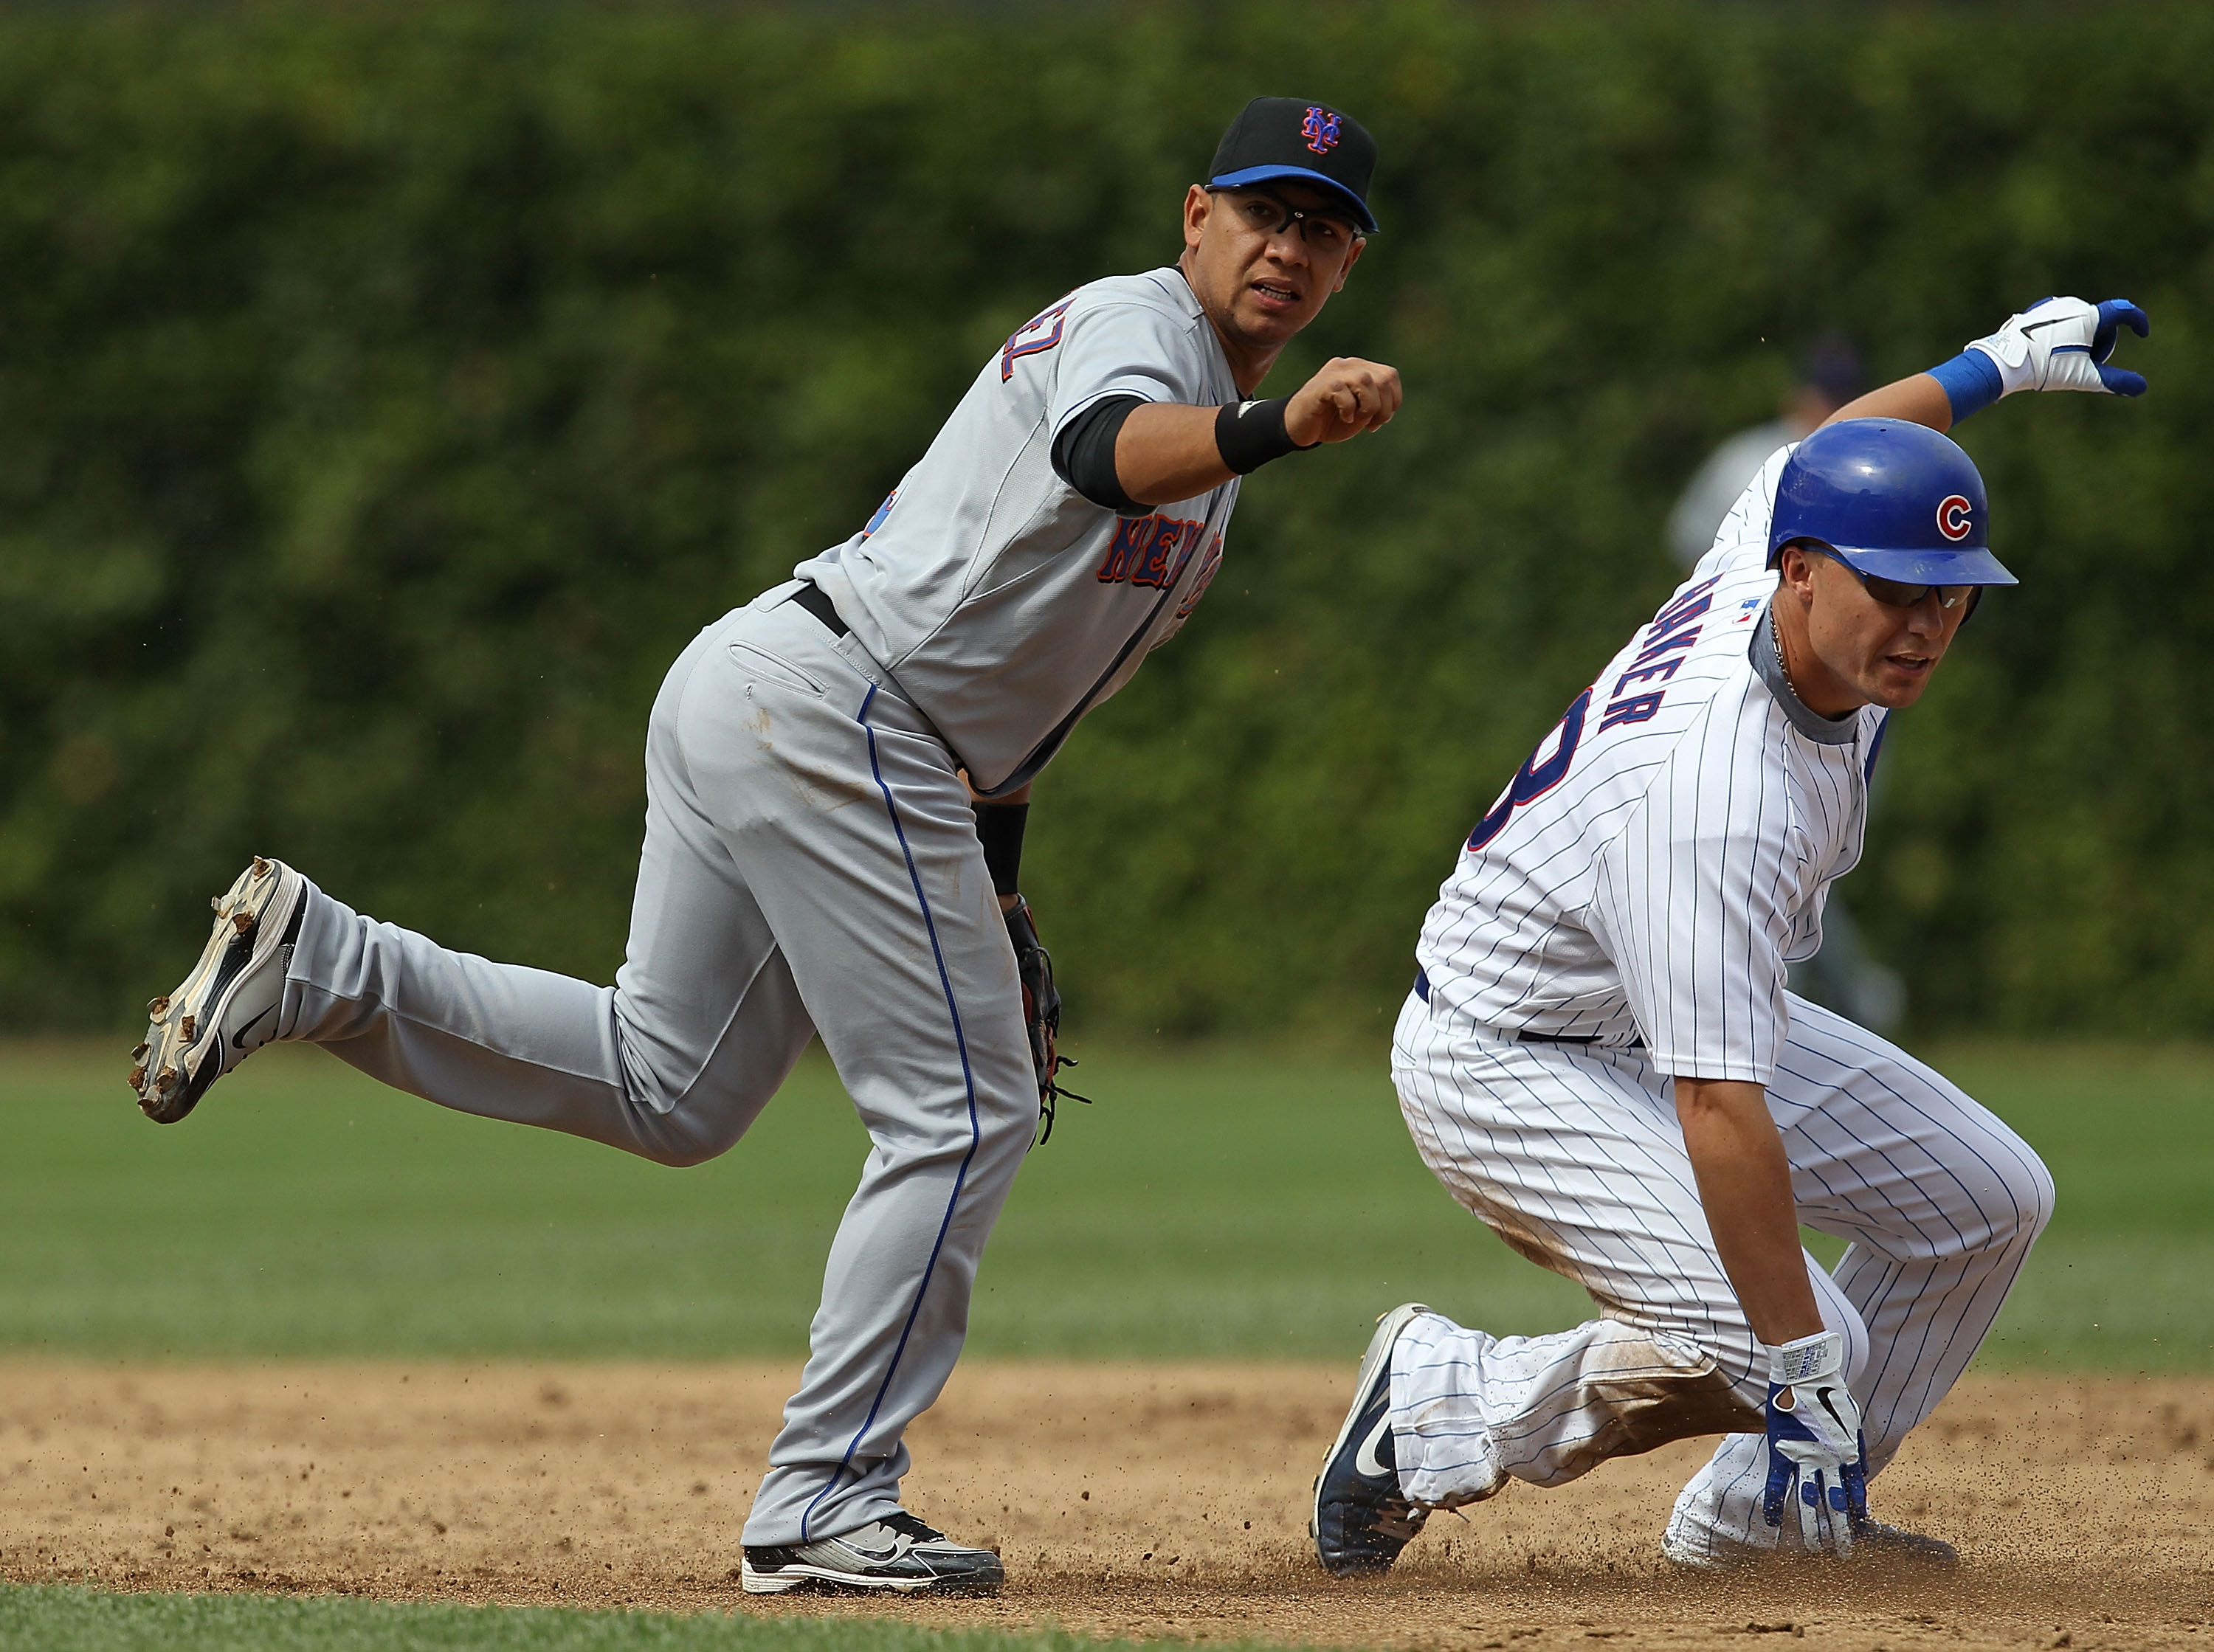 CHICAGO - SEPTEMBER 05: Luis Hernandez #3 of the New York Mets hops out of the way of Jeff Baker #28 of the Chicago Cubs after turning a double play at Wrigley Field on September 5, 2010 in Chicago, Illinois. The Mets defeated the Cubs 18-5. (Photo by Jon